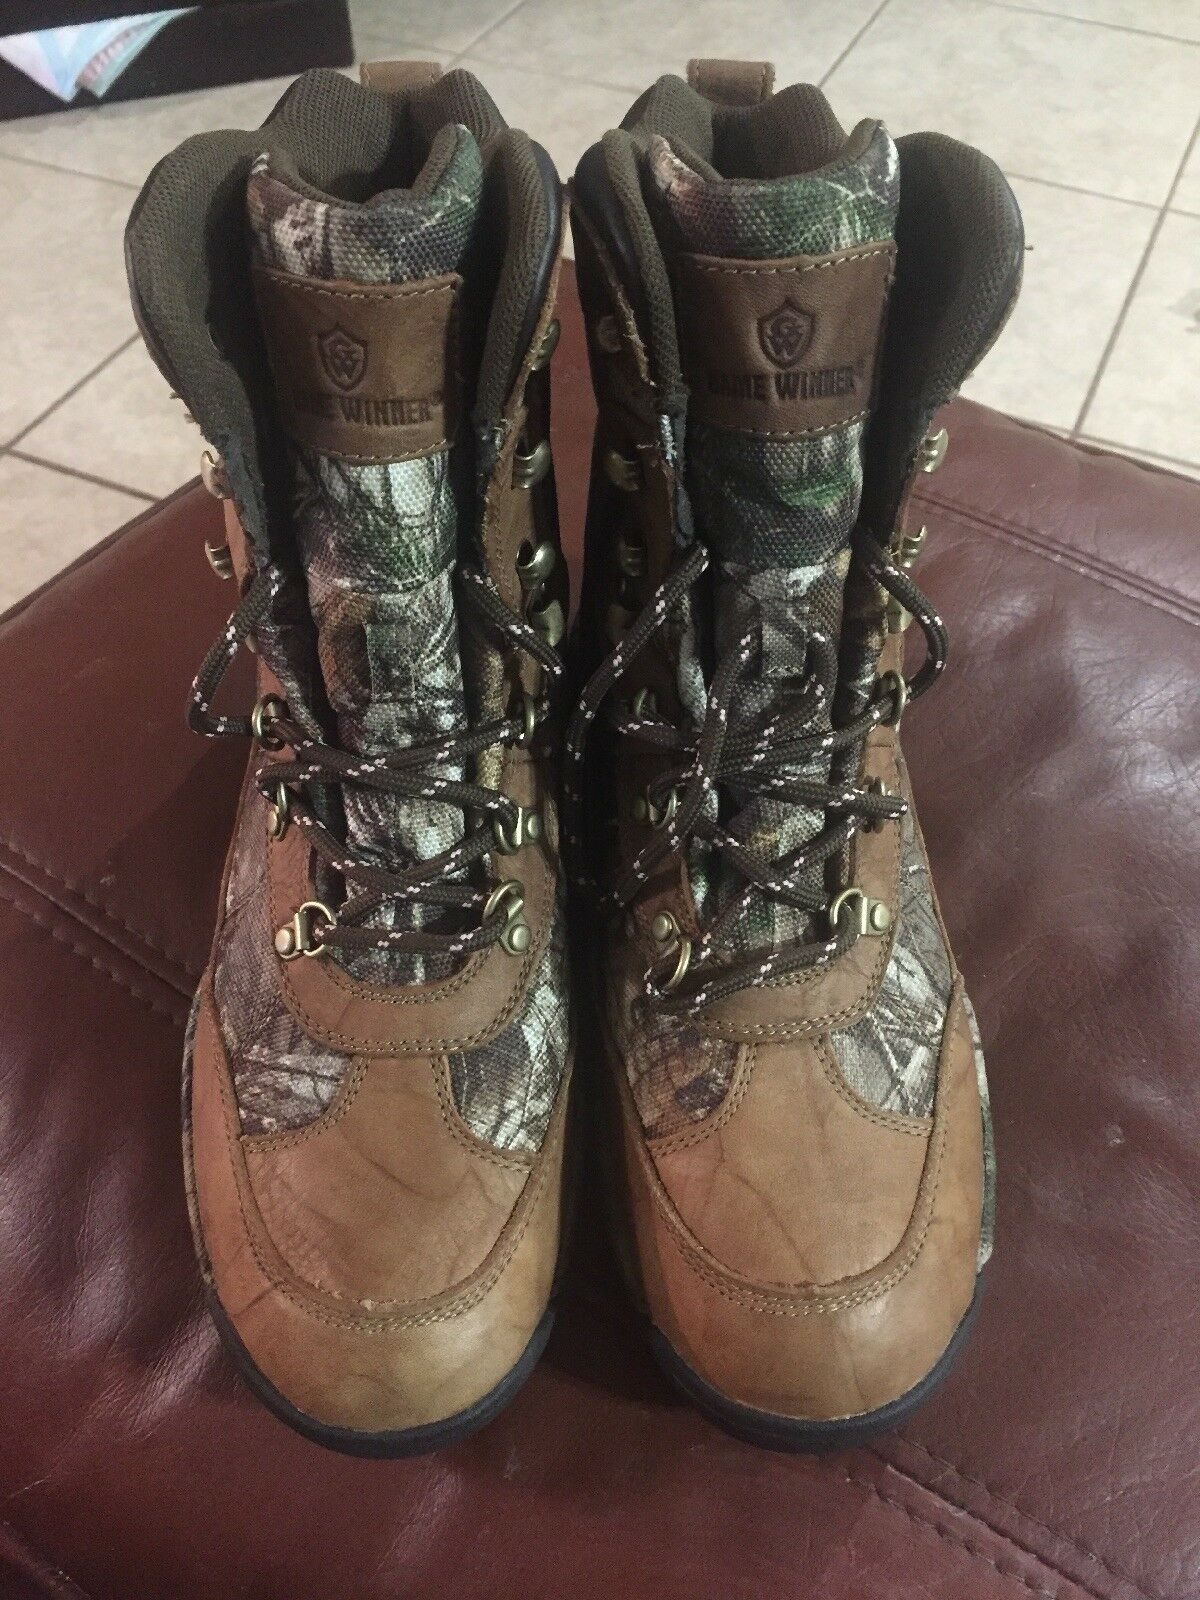 6e16ee4b9592f New Women's Game Winner REALTREE Xtra Terrain Hunting Boot Size 10 Hiker  All oujsws6011-new shoes